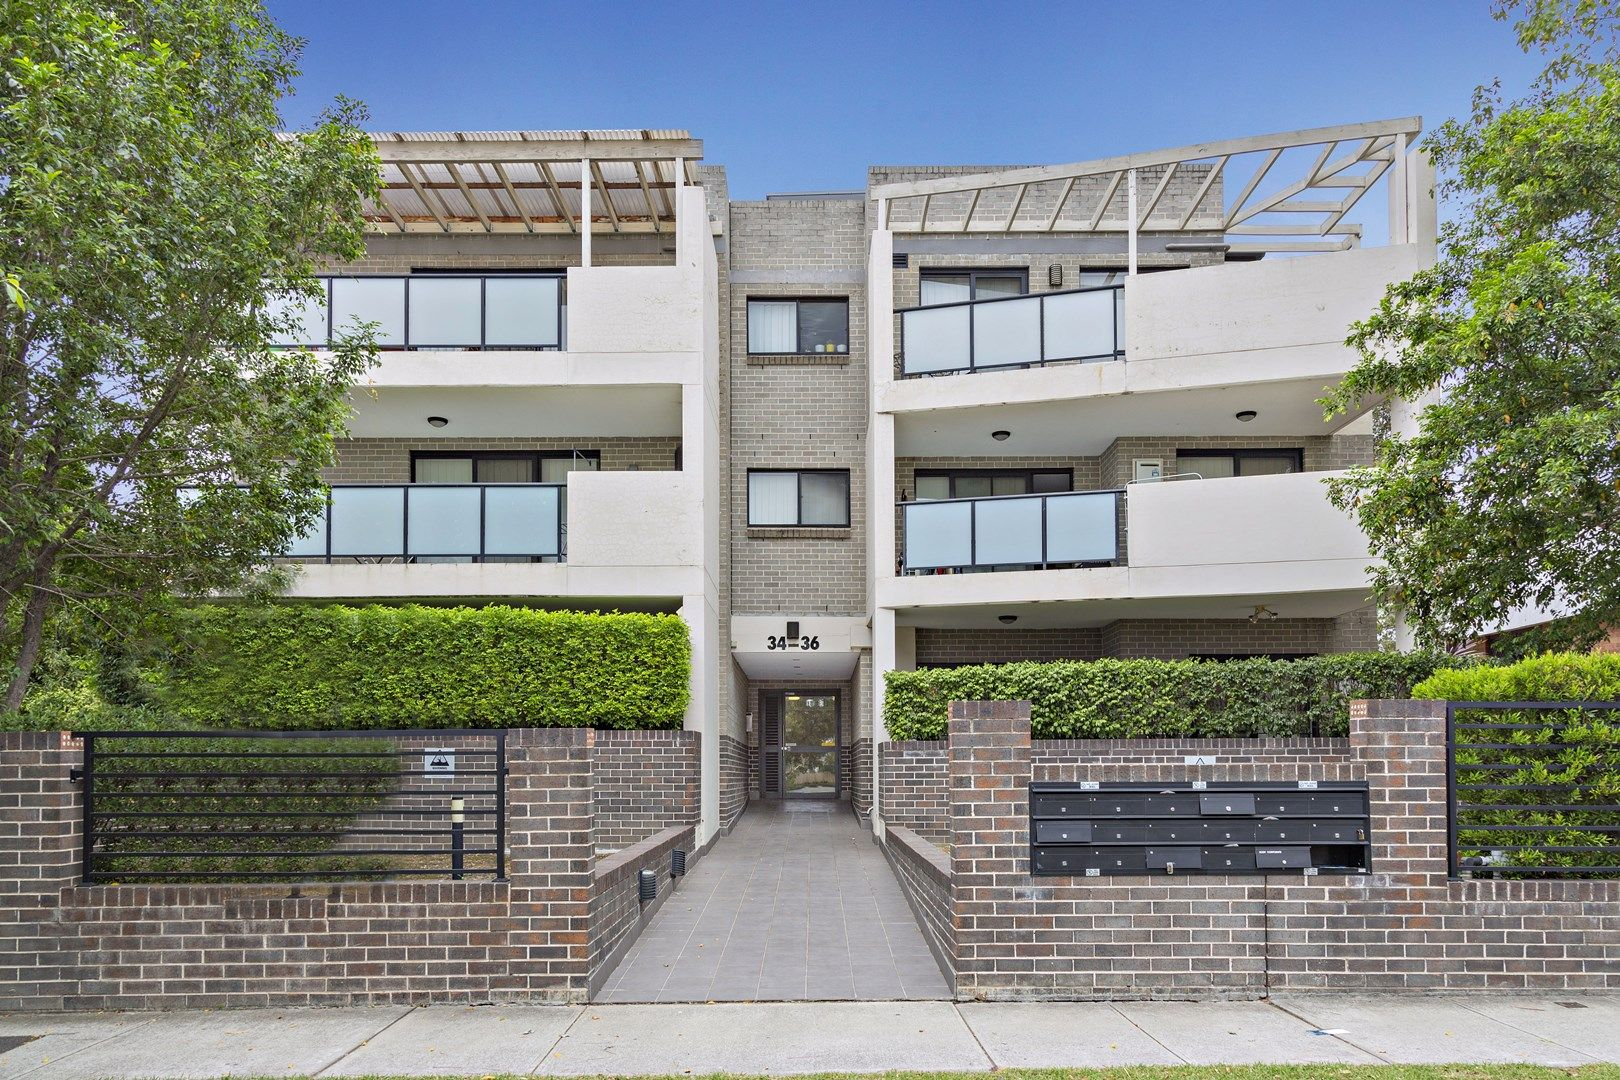 34-36 Courallie Ave, Homebush West NSW 2140, Image 0